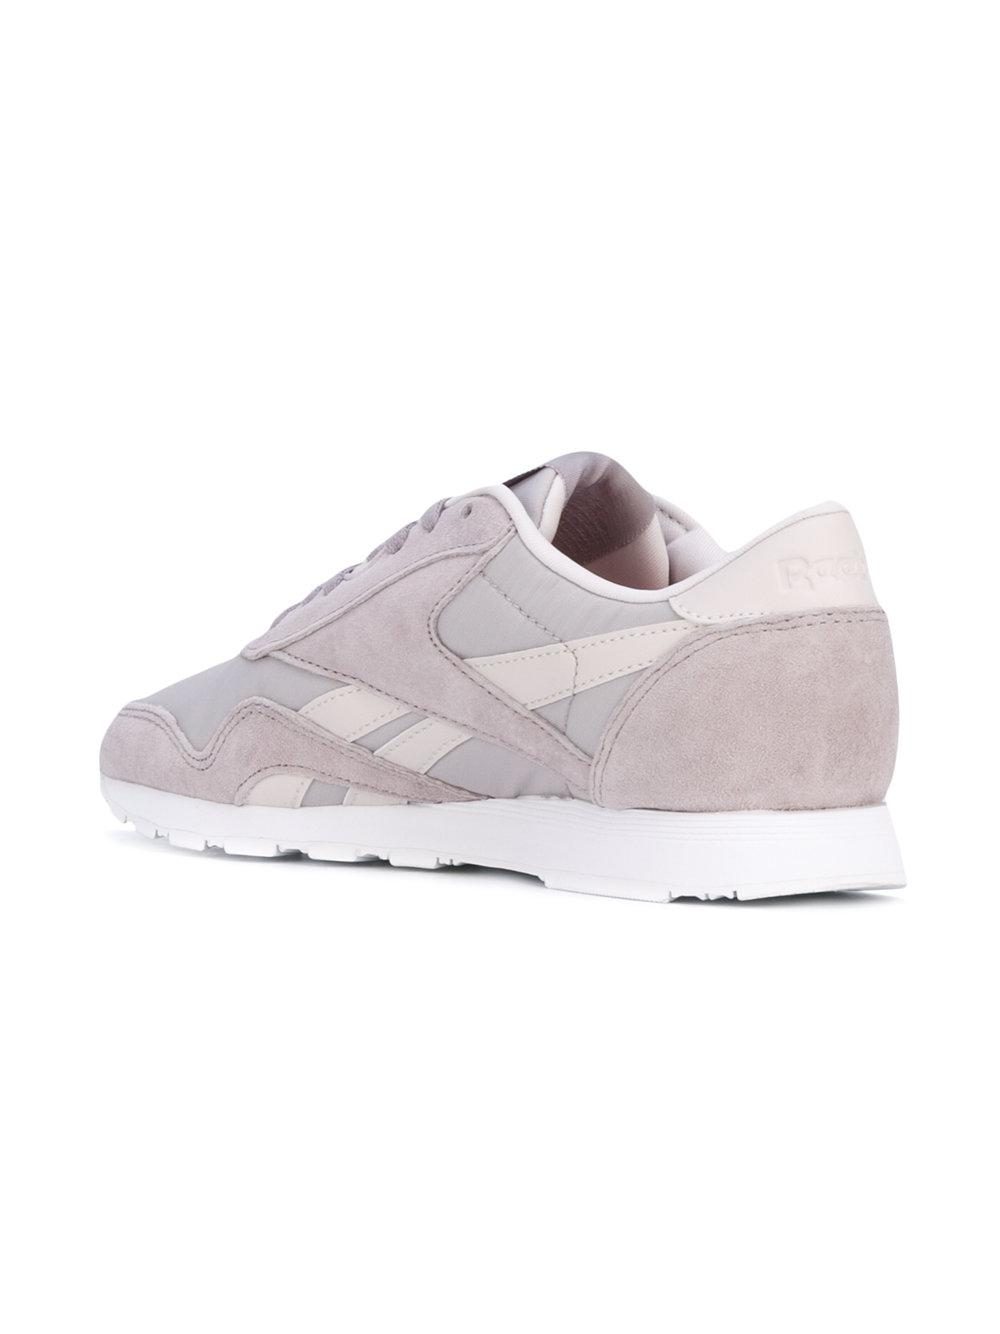 Reebok Leather Stockholm Classic Sneakers in Grey (Grey)